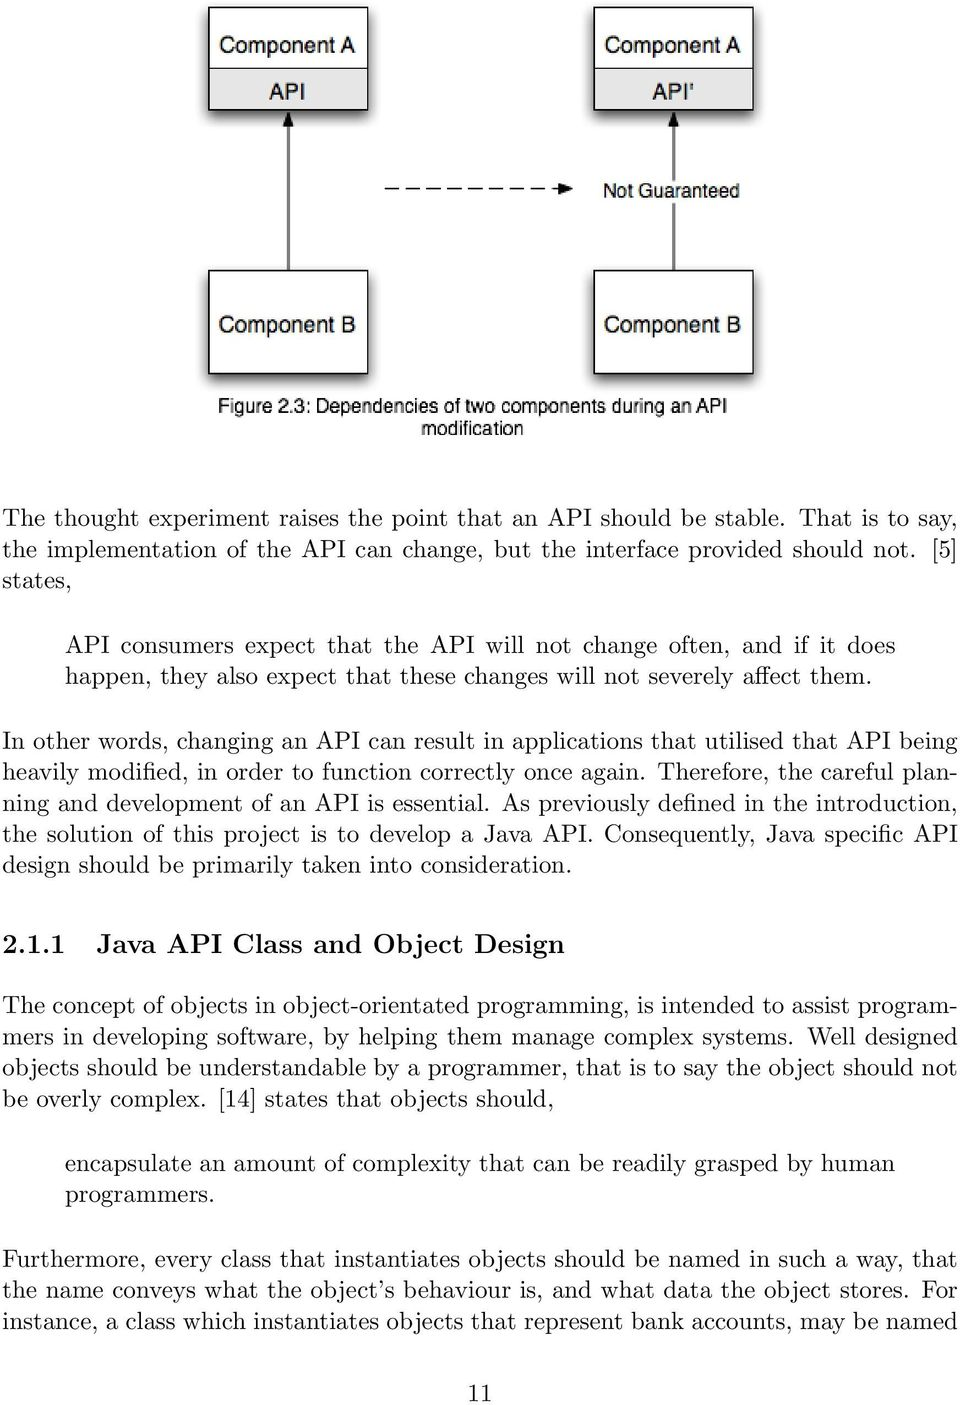 In other words, changing an API can result in applications that utilised that API being heavily modified, in order to function correctly once again.